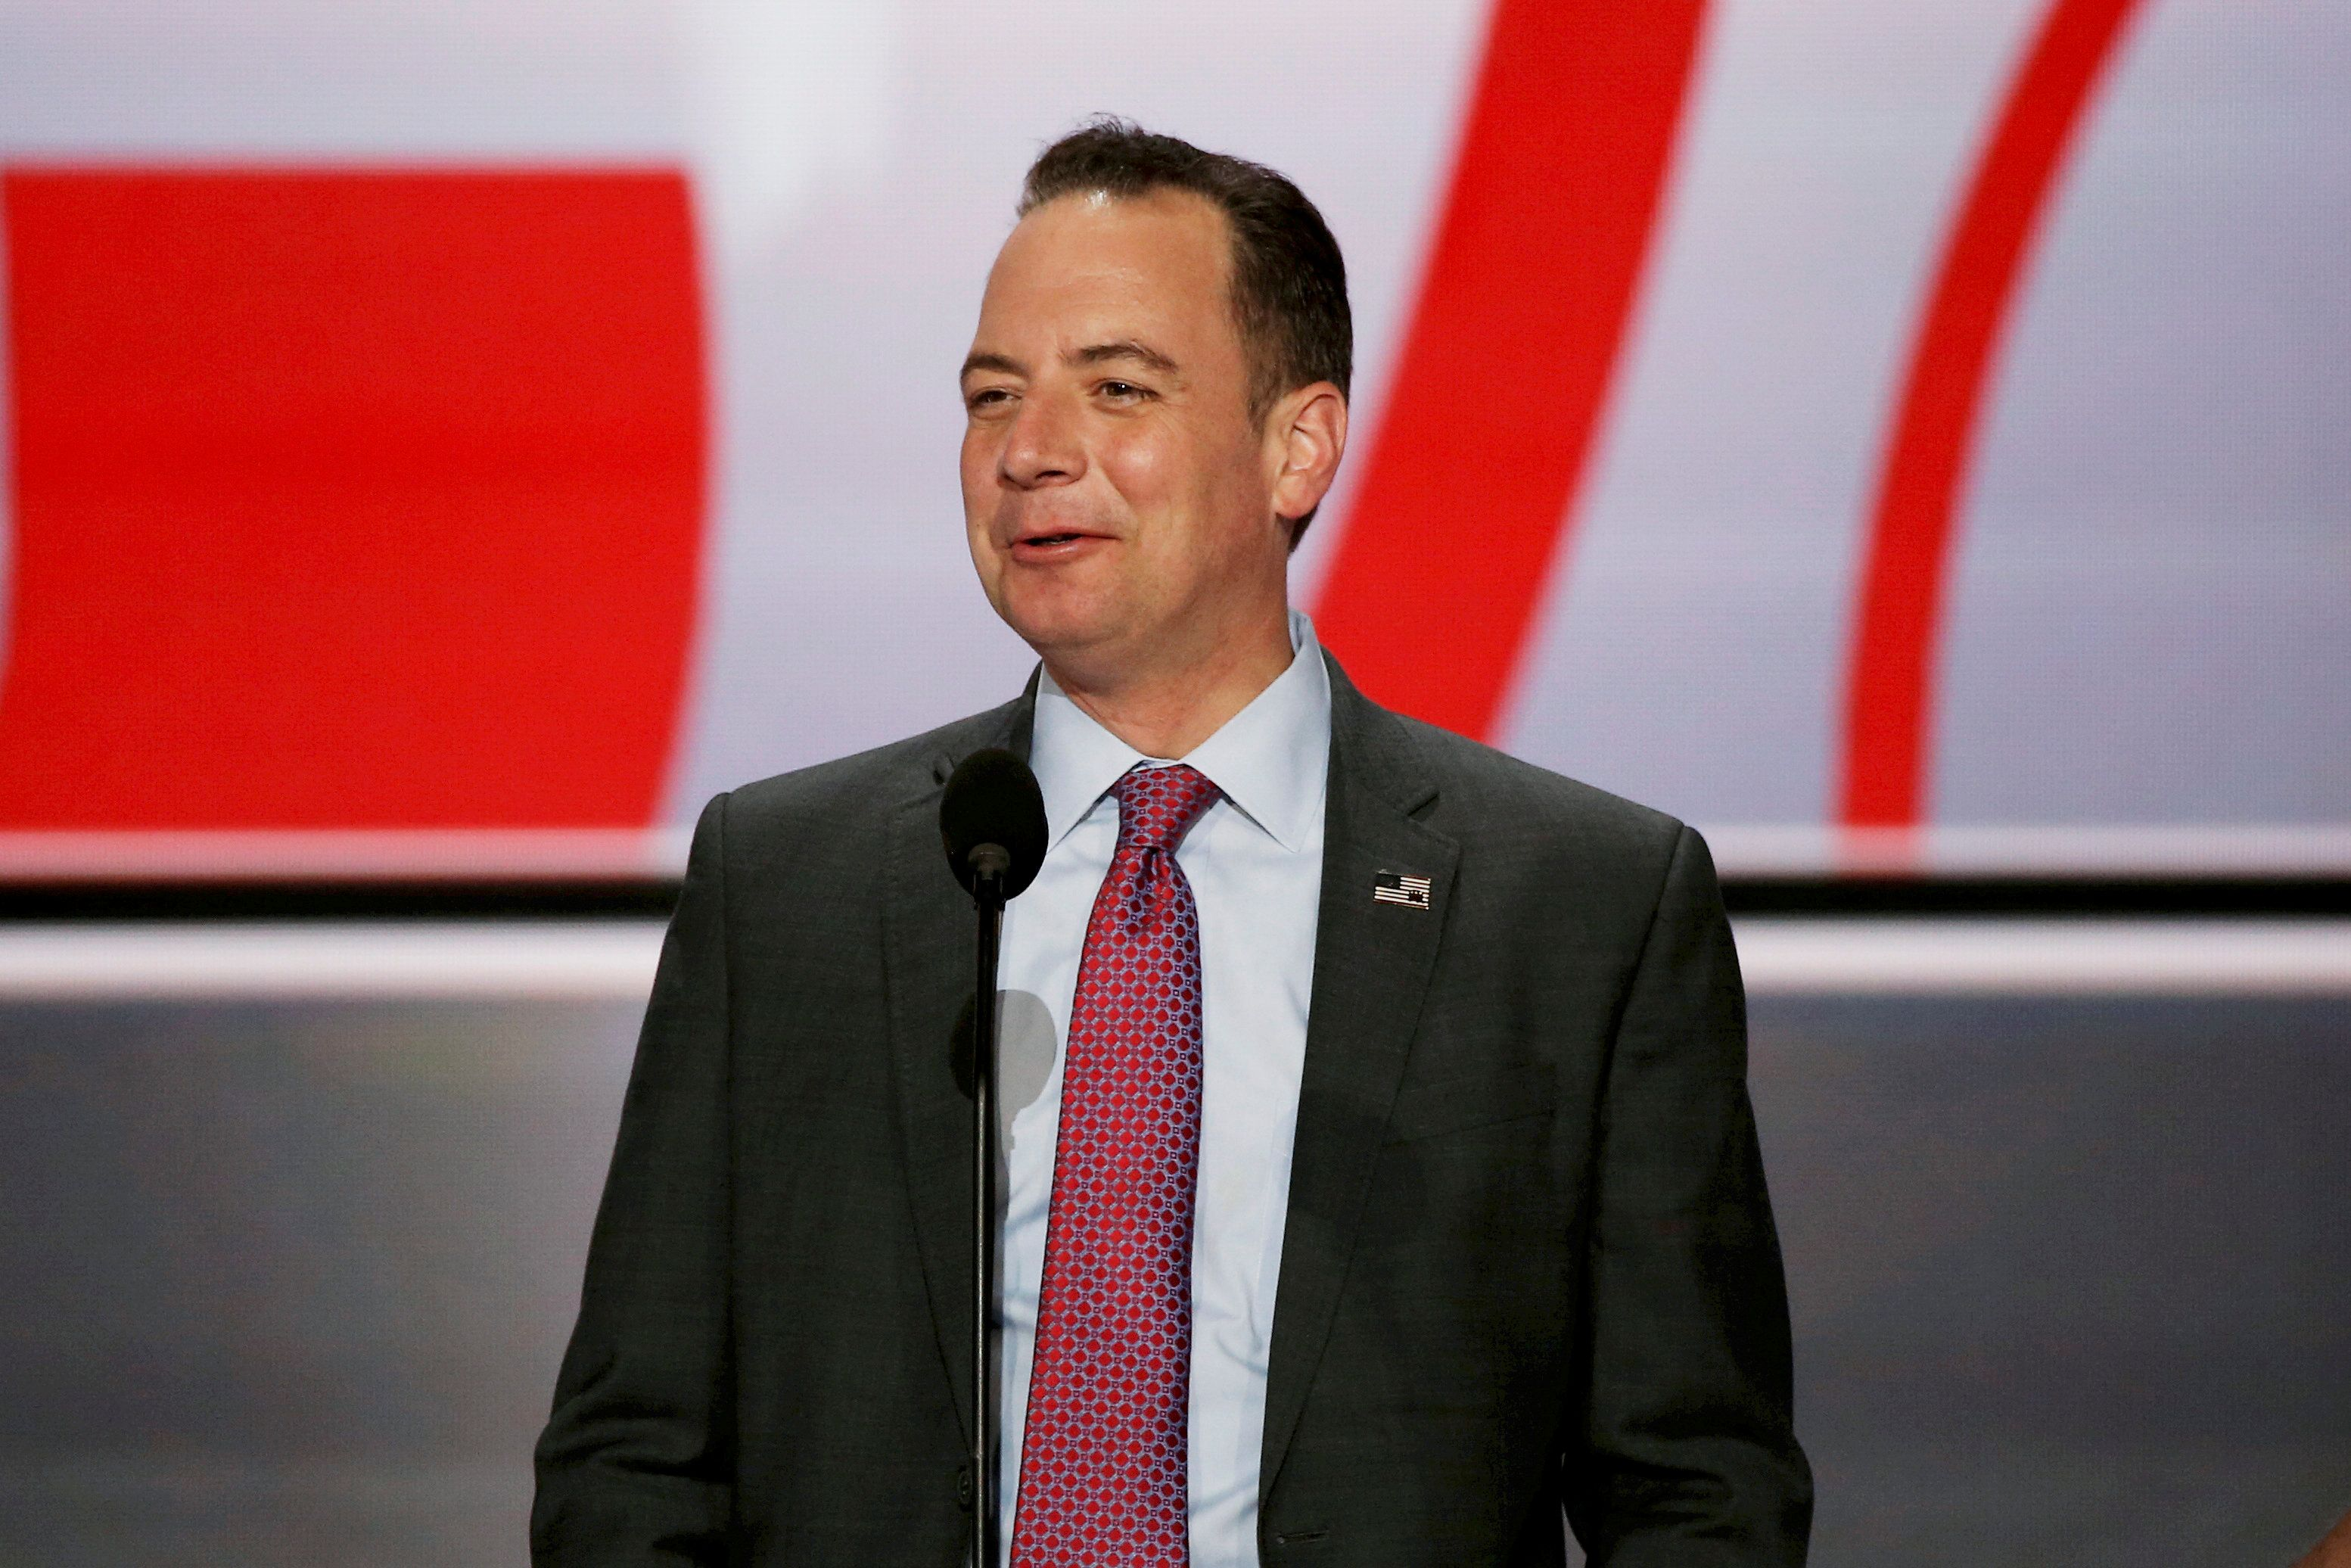 Reince Priebus, Chairman of the Republican National Committee stands at the main podium as he previews the stage at the Republican National Convention in Cleveland, Ohio, U.S. on July 17, 2016. REUTERS/Mike Segar/File Photo